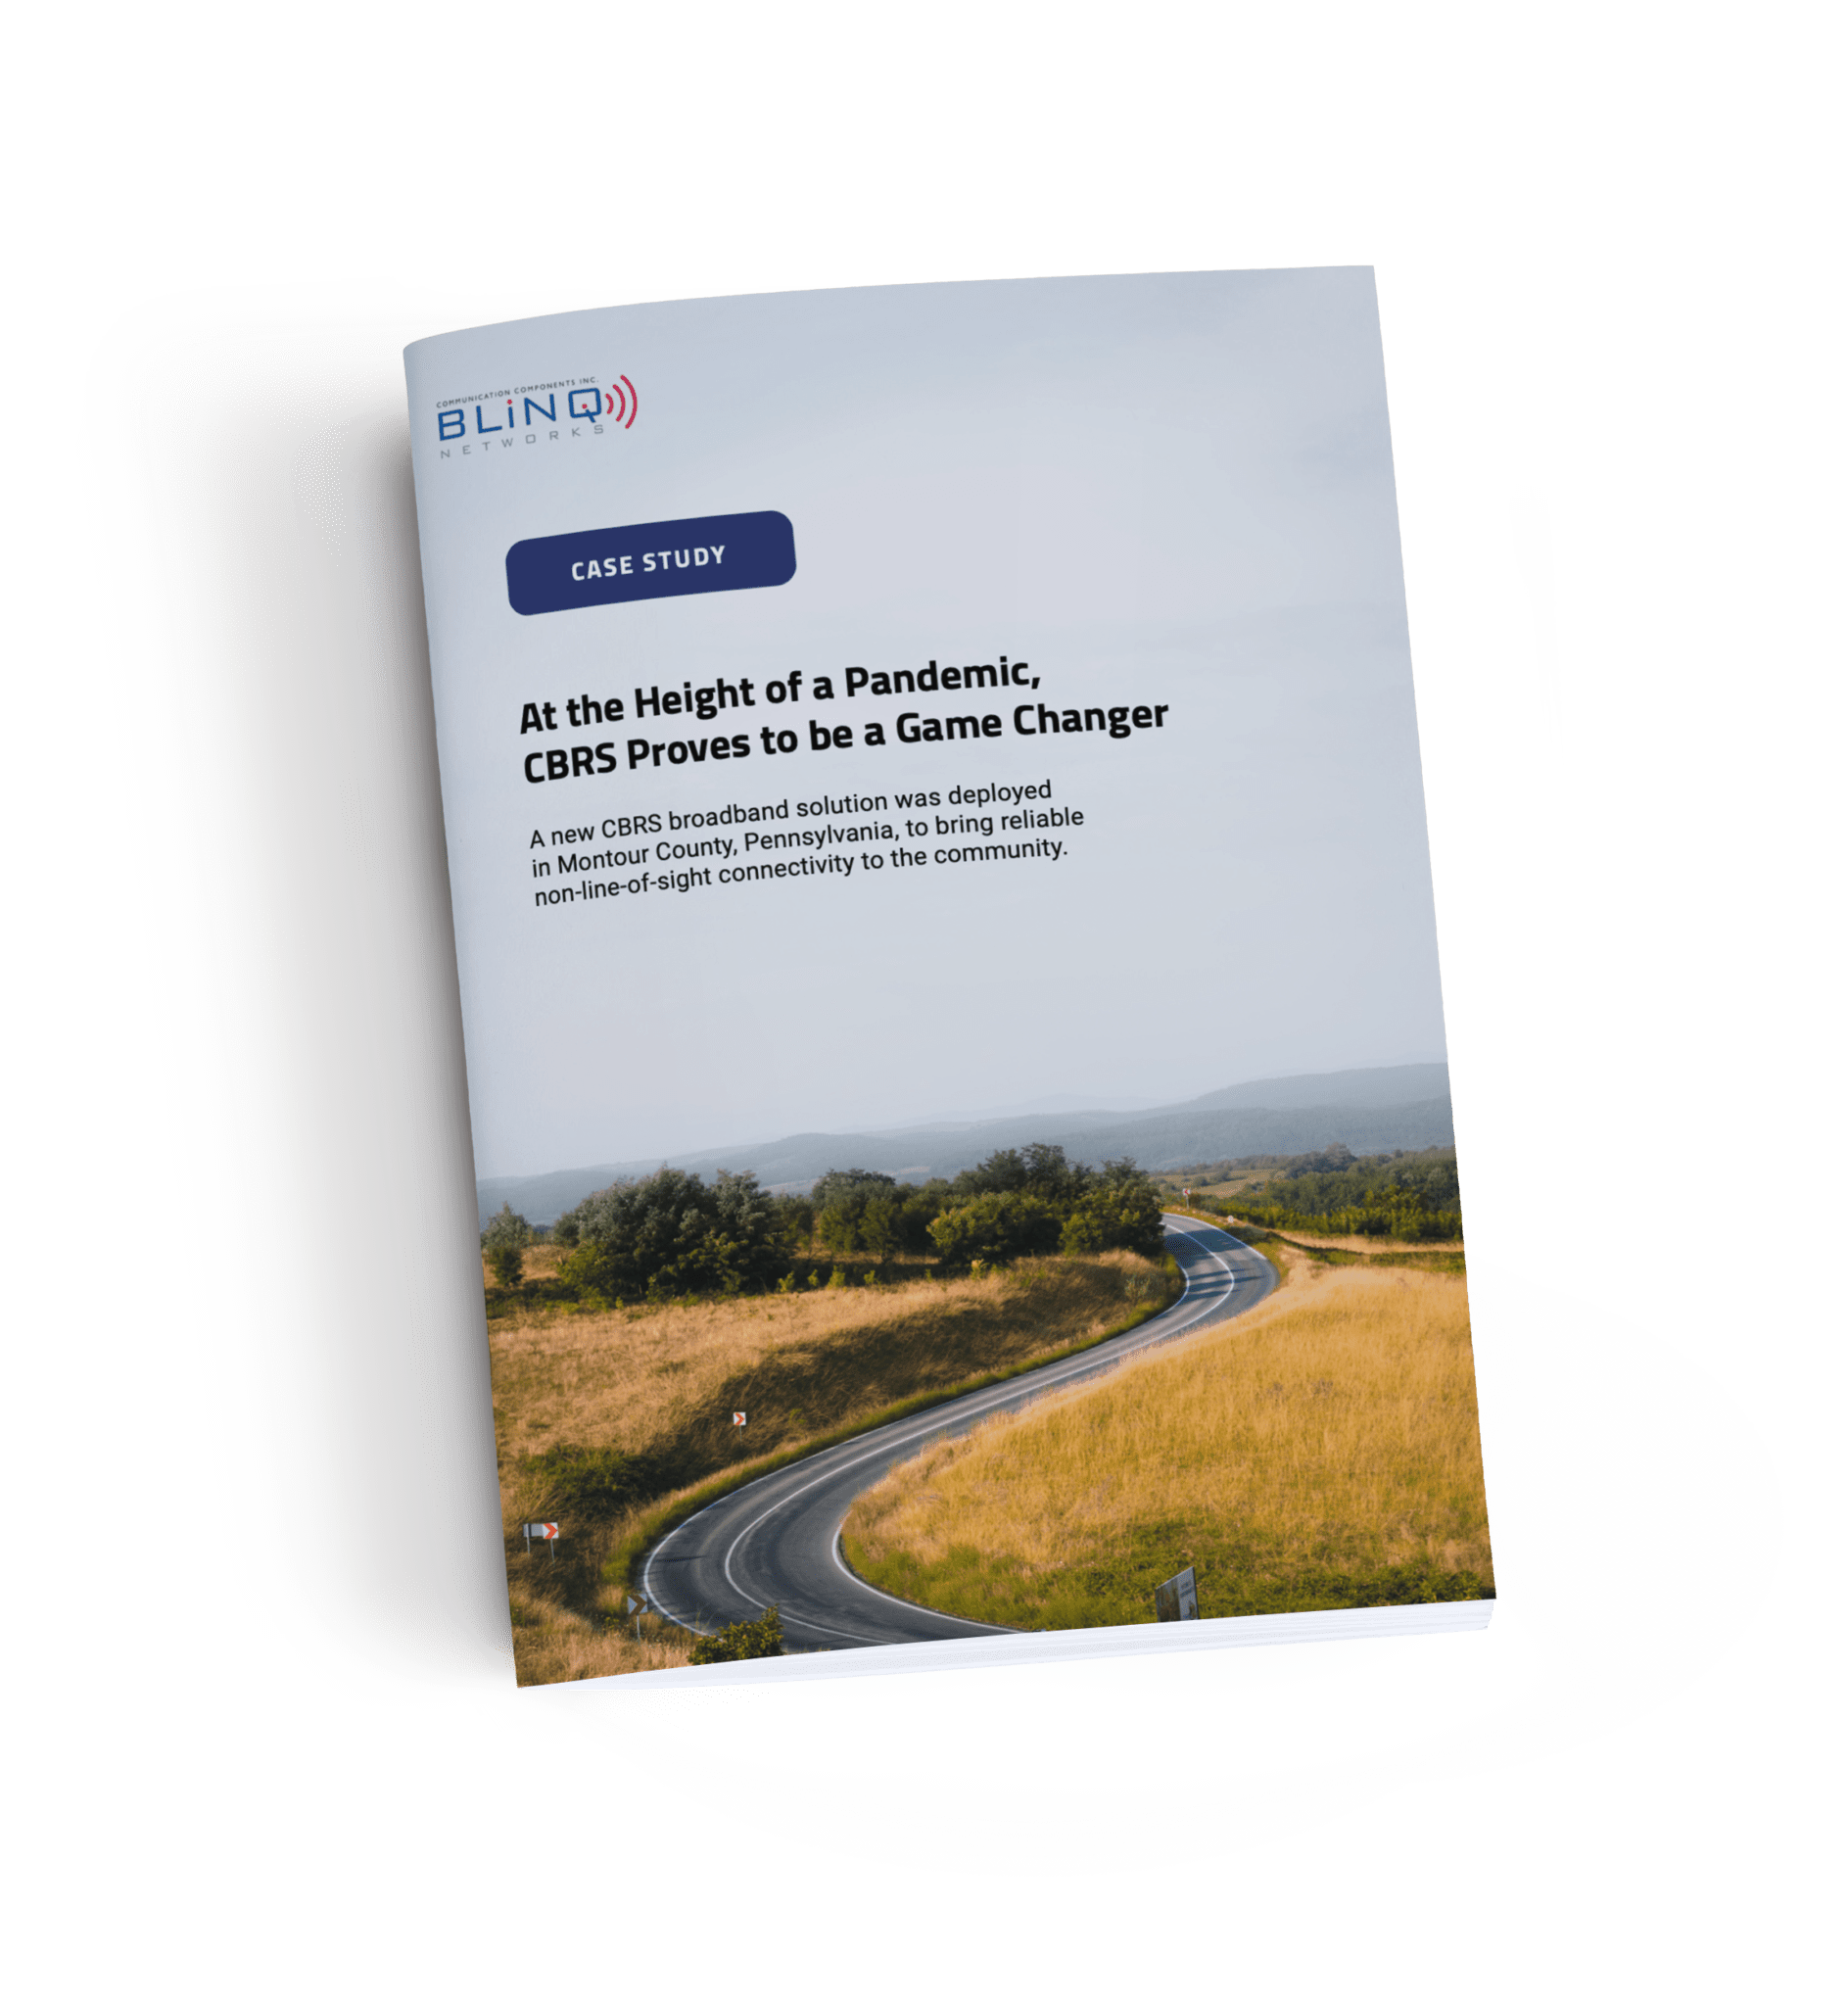 CBRS LTE network case studies for fixed wireless access